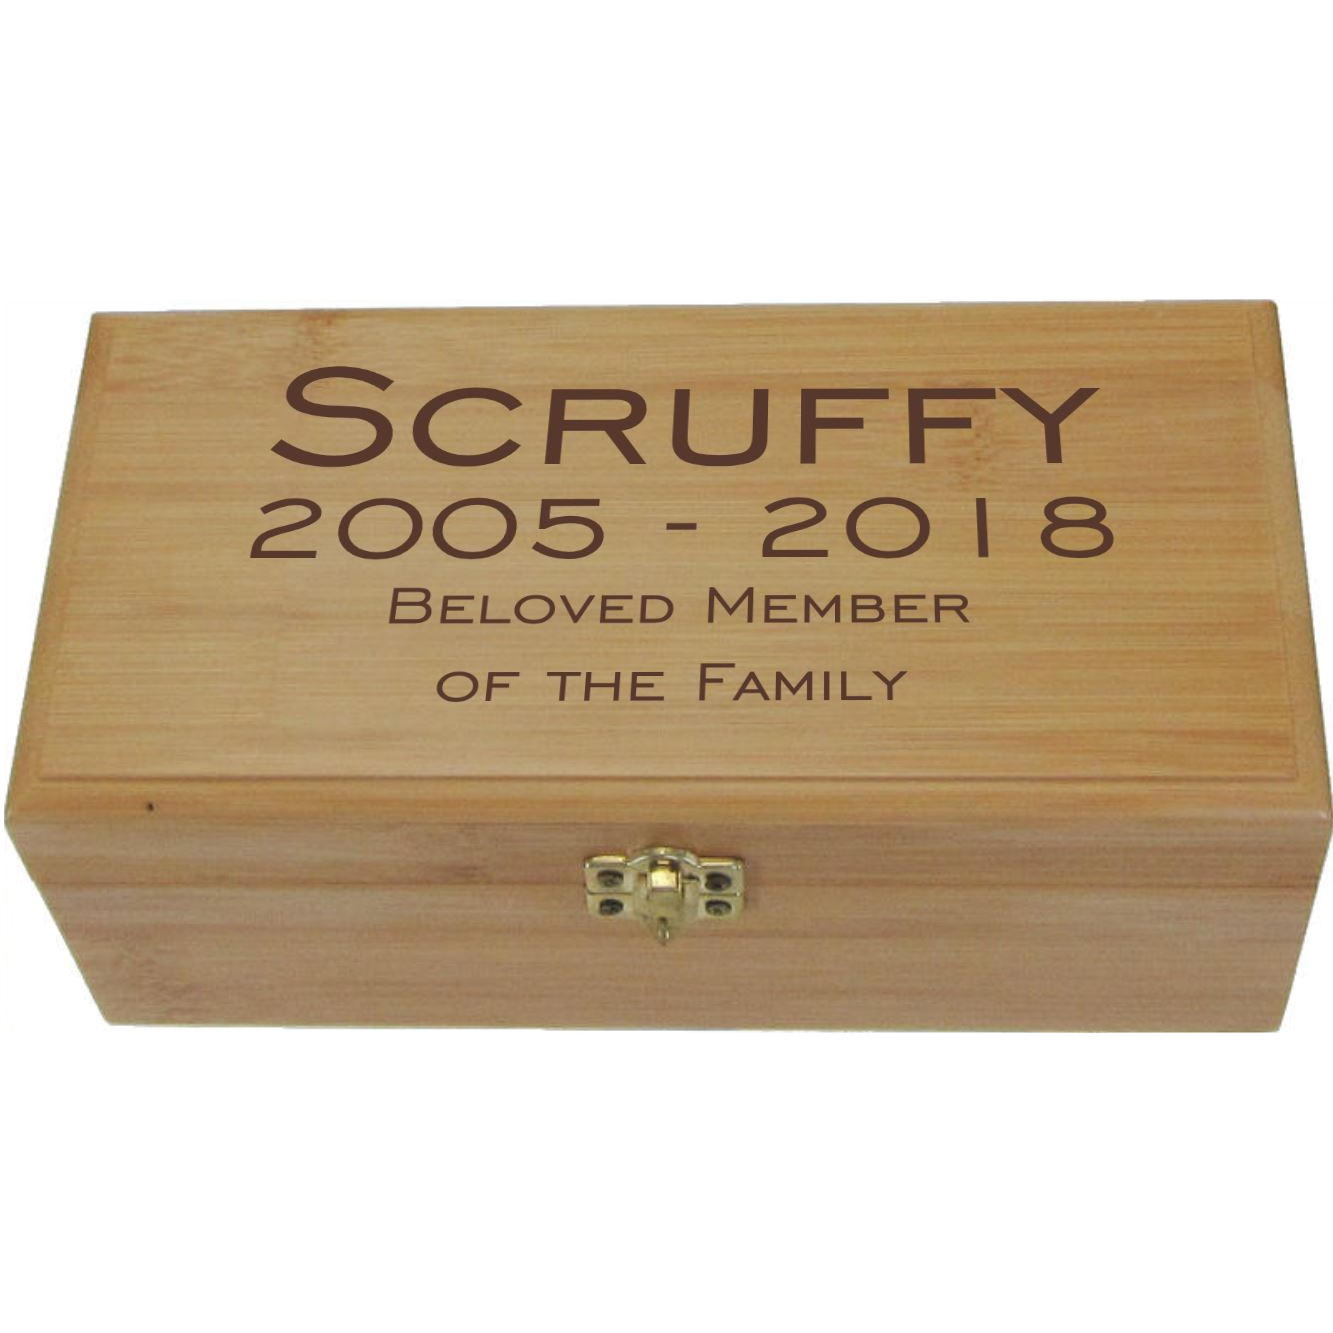 Engraving on your Urn (Urn not included)